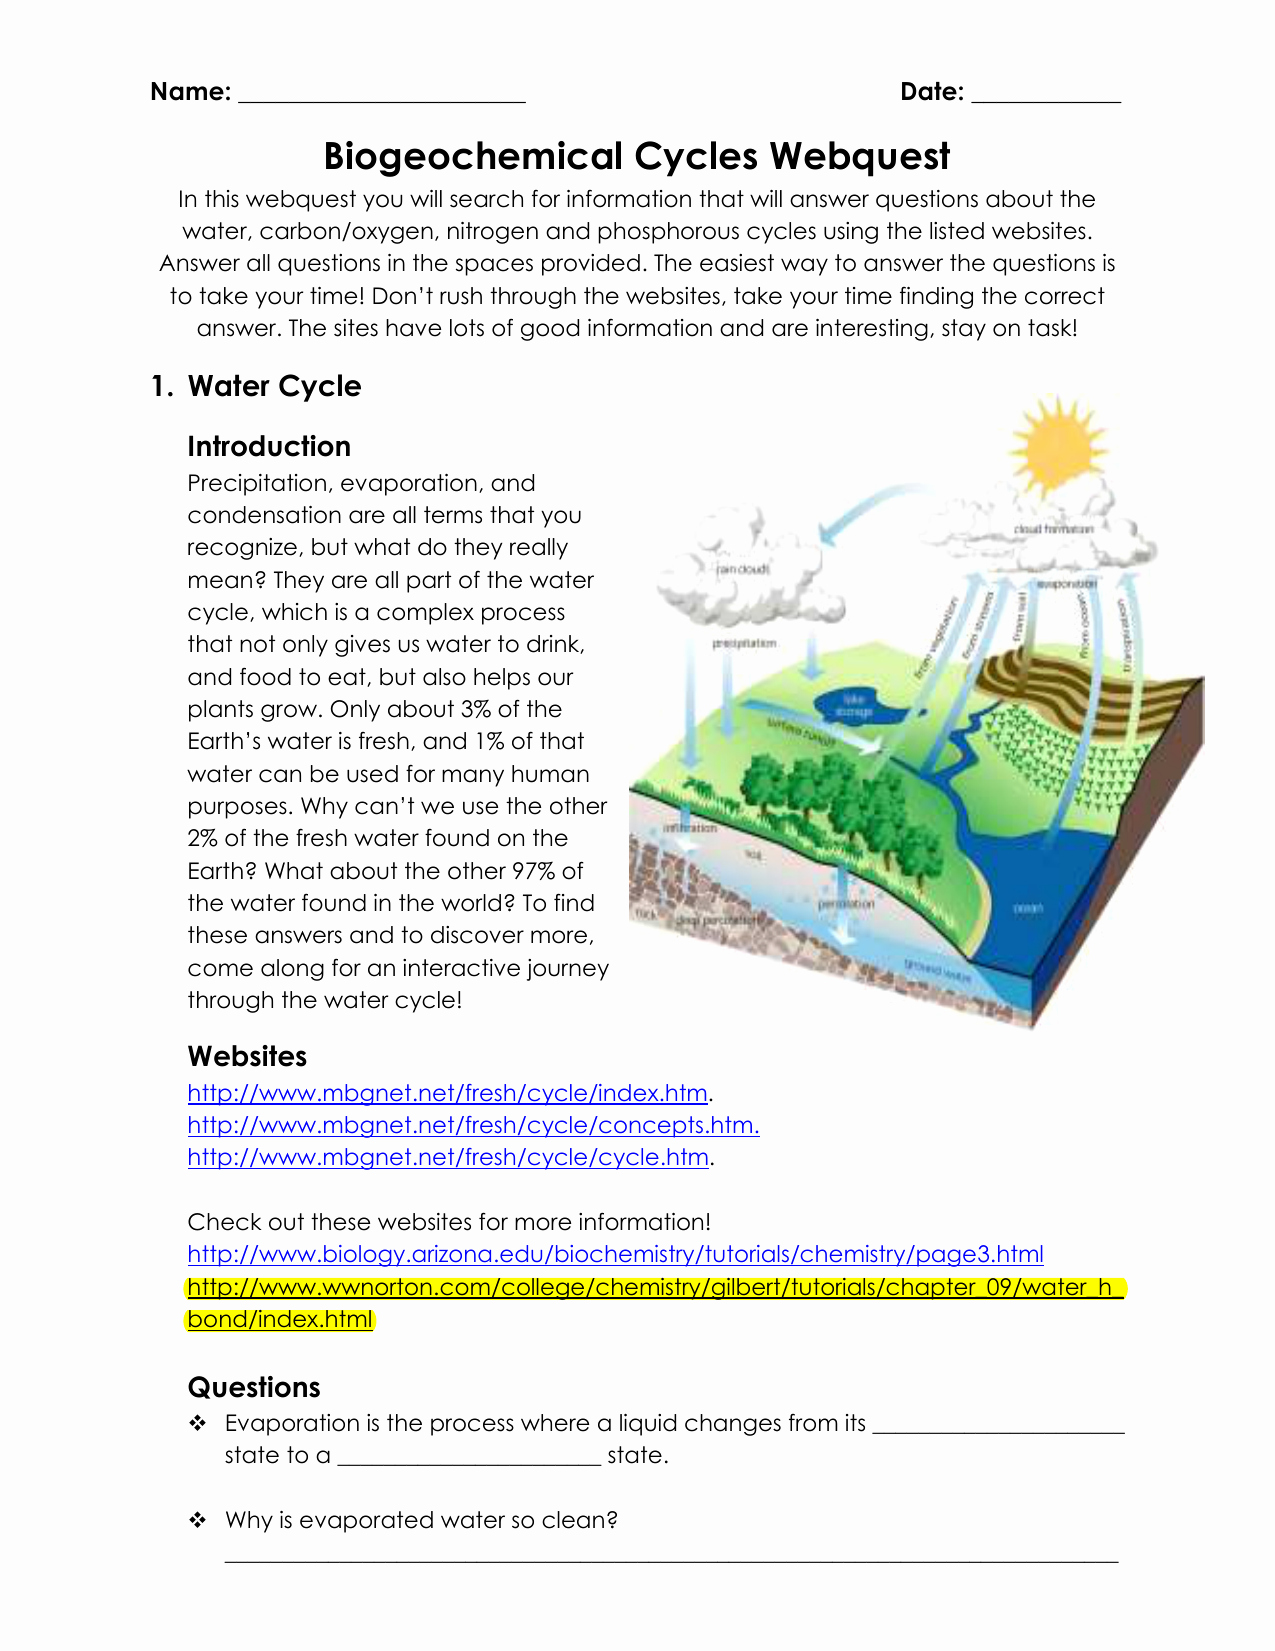 Nitrogen Cycle Worksheet Answer Key Awesome Water Carbon and Nitrogen Cycle Worksheet Color Sheet